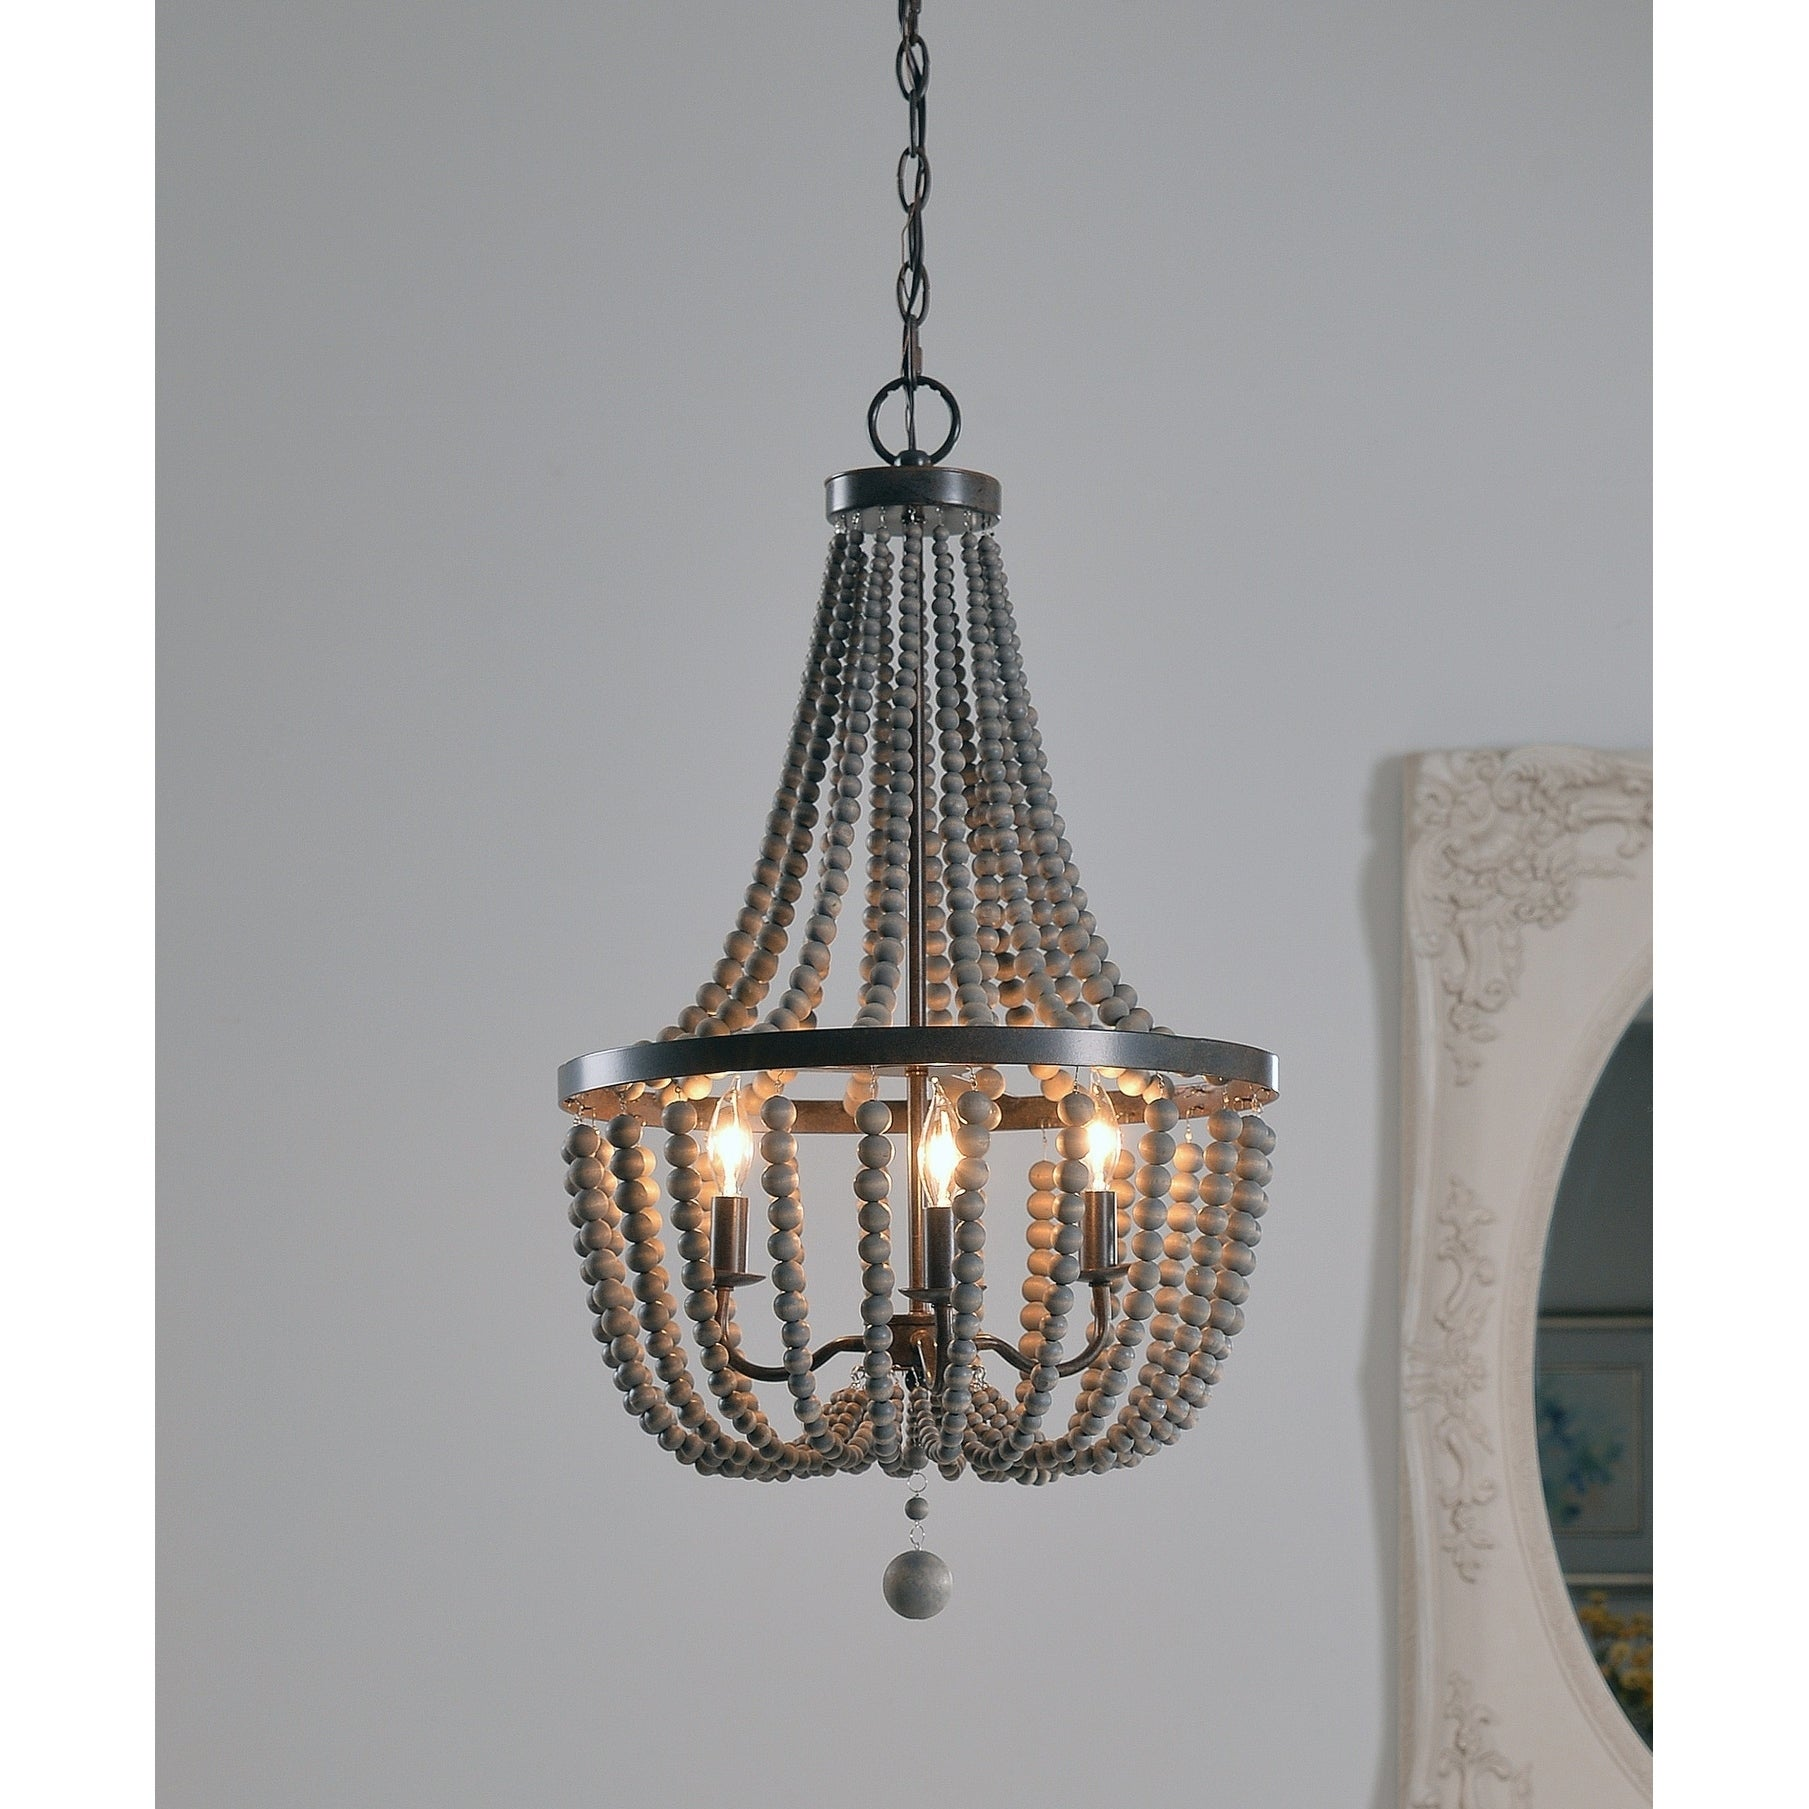 Chandeliers ceiling lighting shop our best lighting ceiling fans deals online at overstock